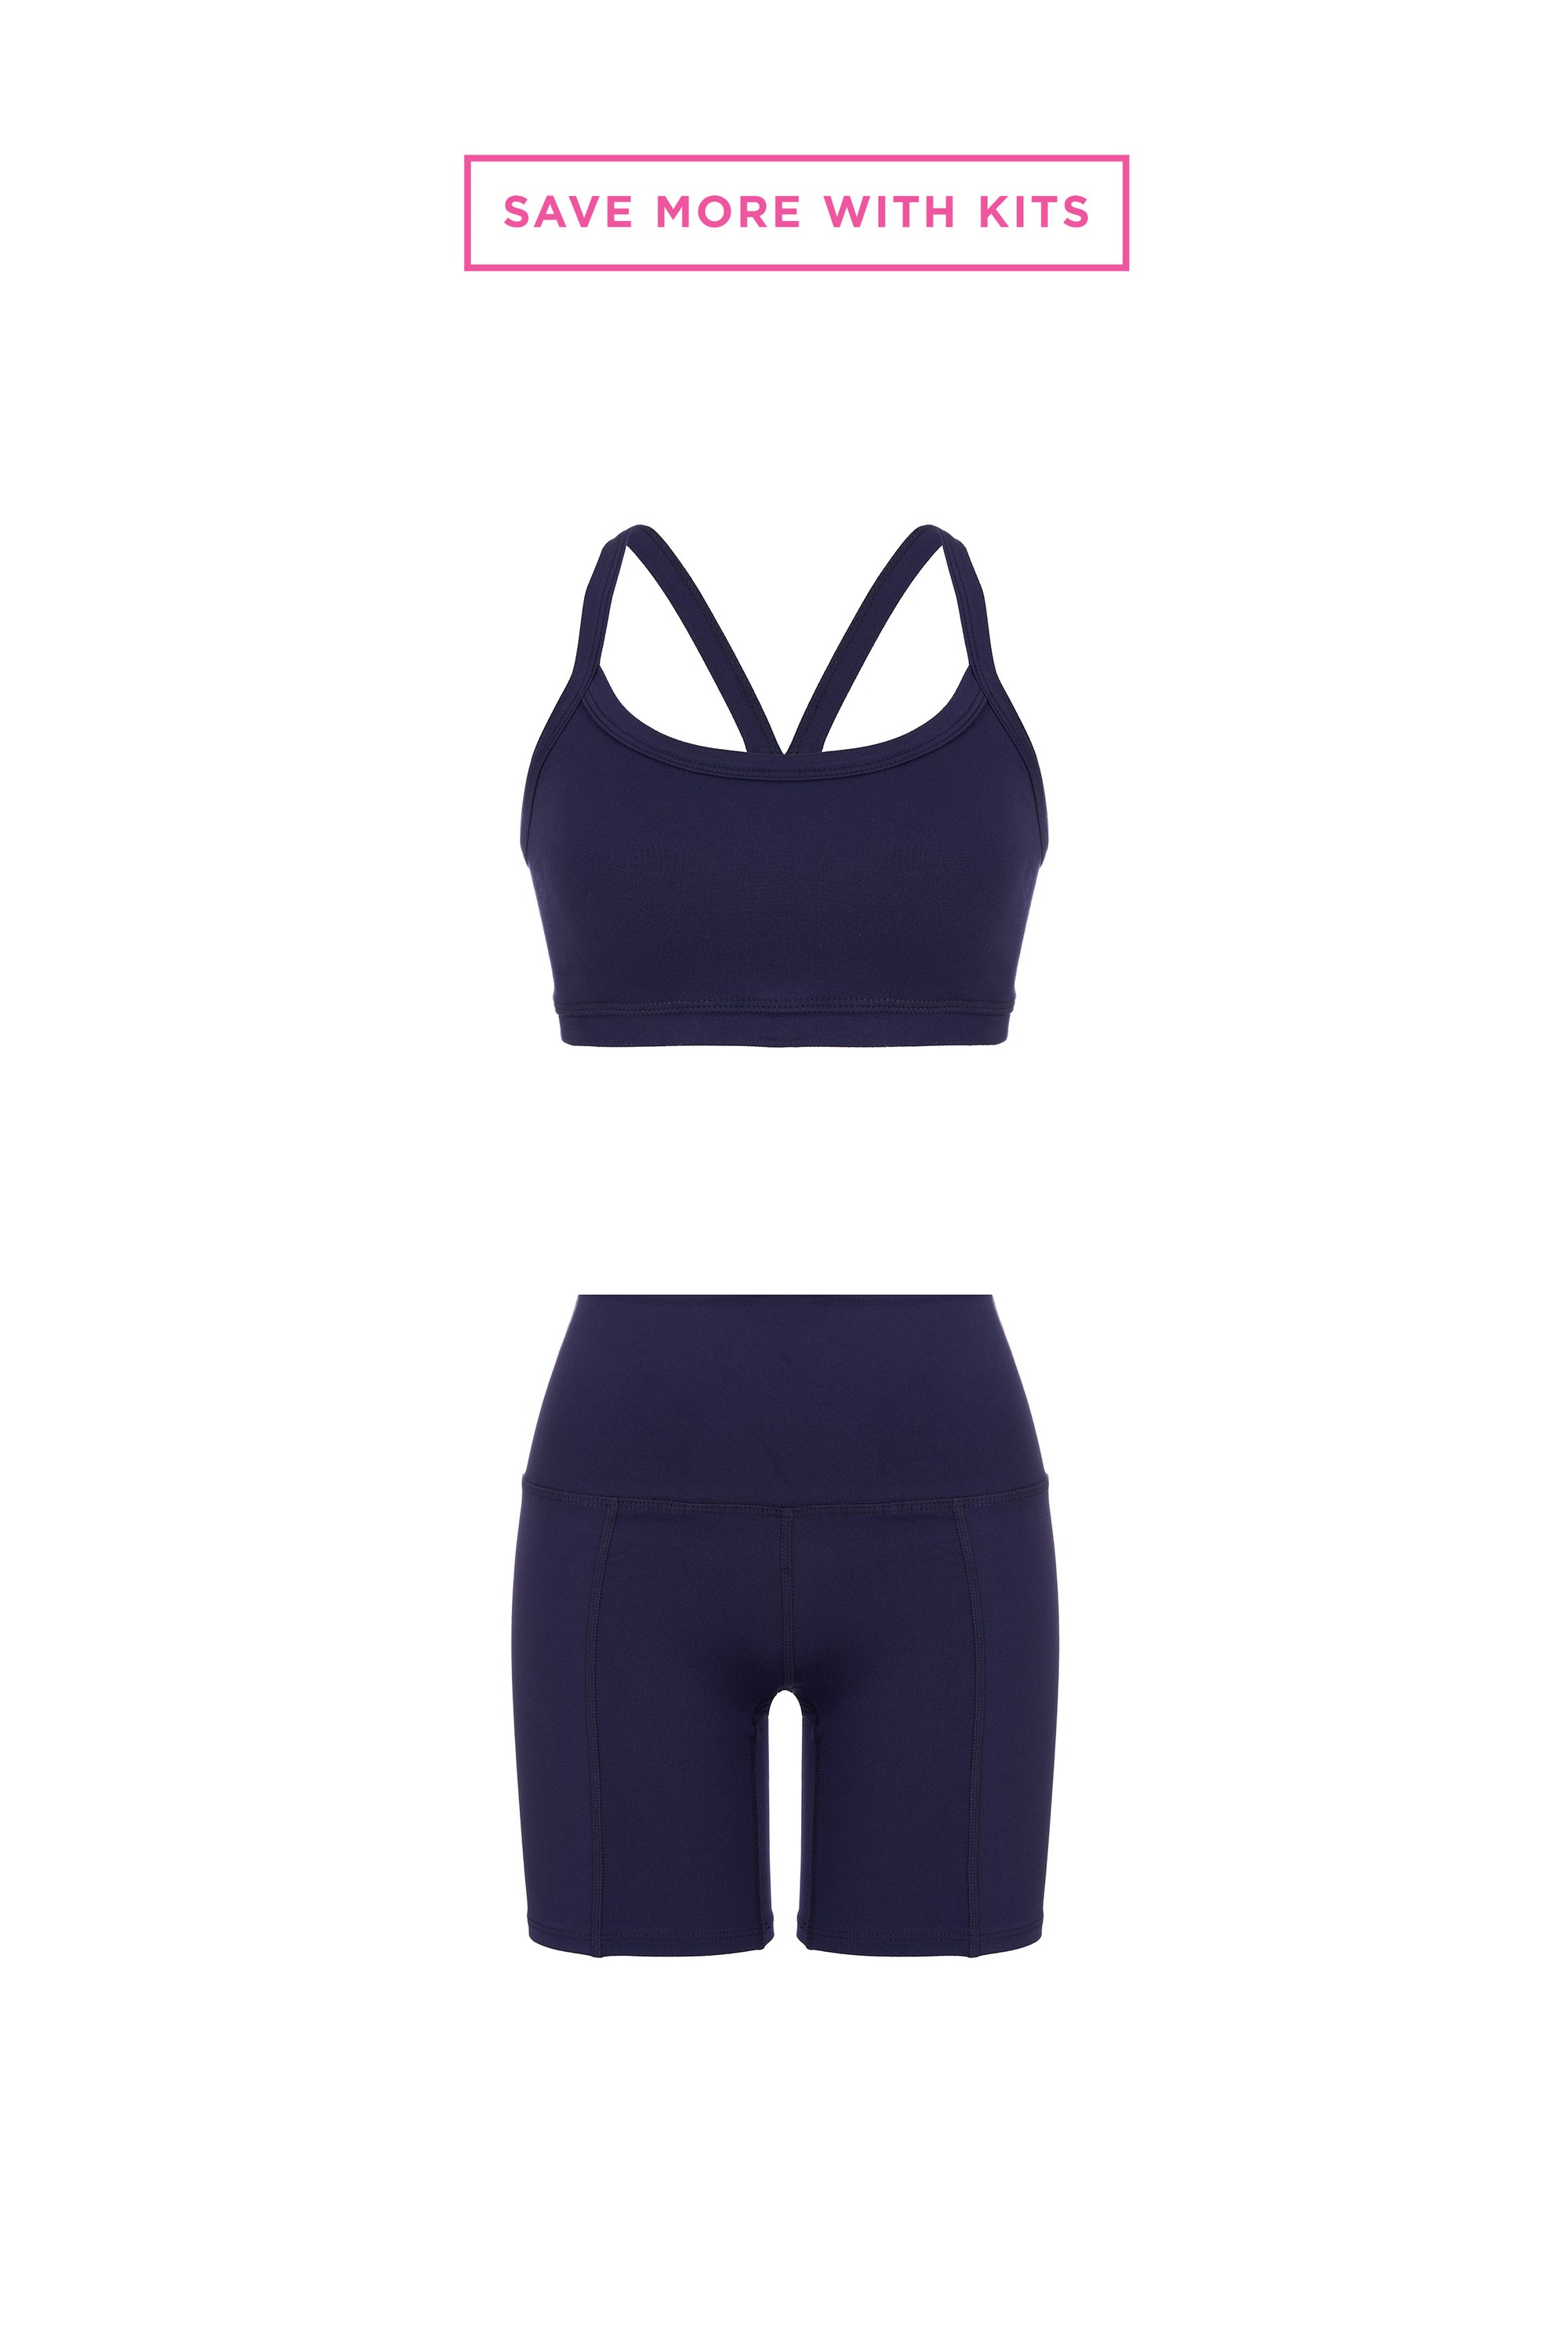 Midnight Blue Bra + Biker Short Kit